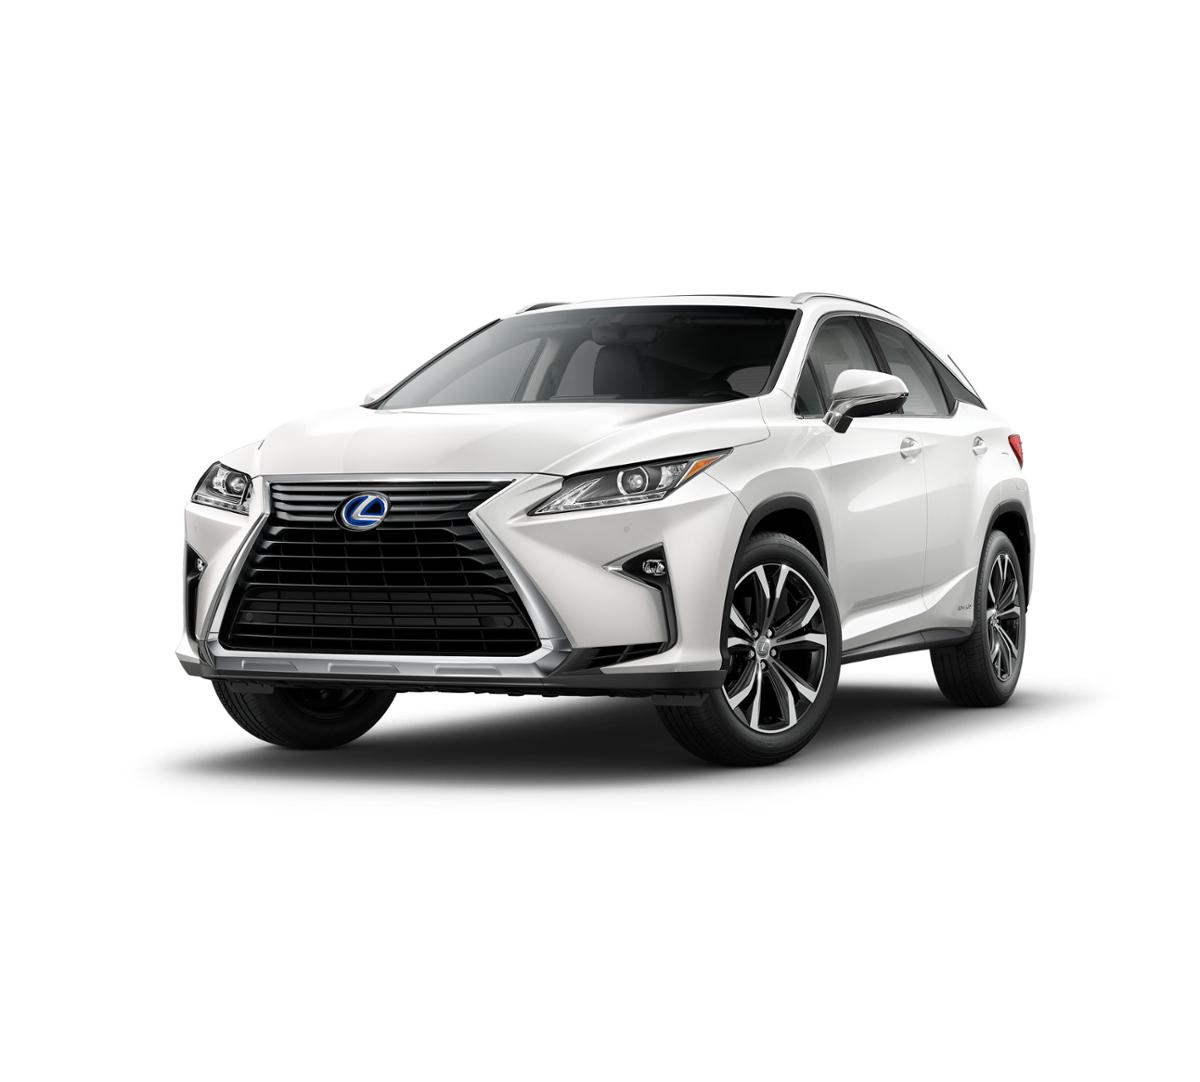 2018 Lexus RX 450h Vehicle Photo in Torrance, CA 90505